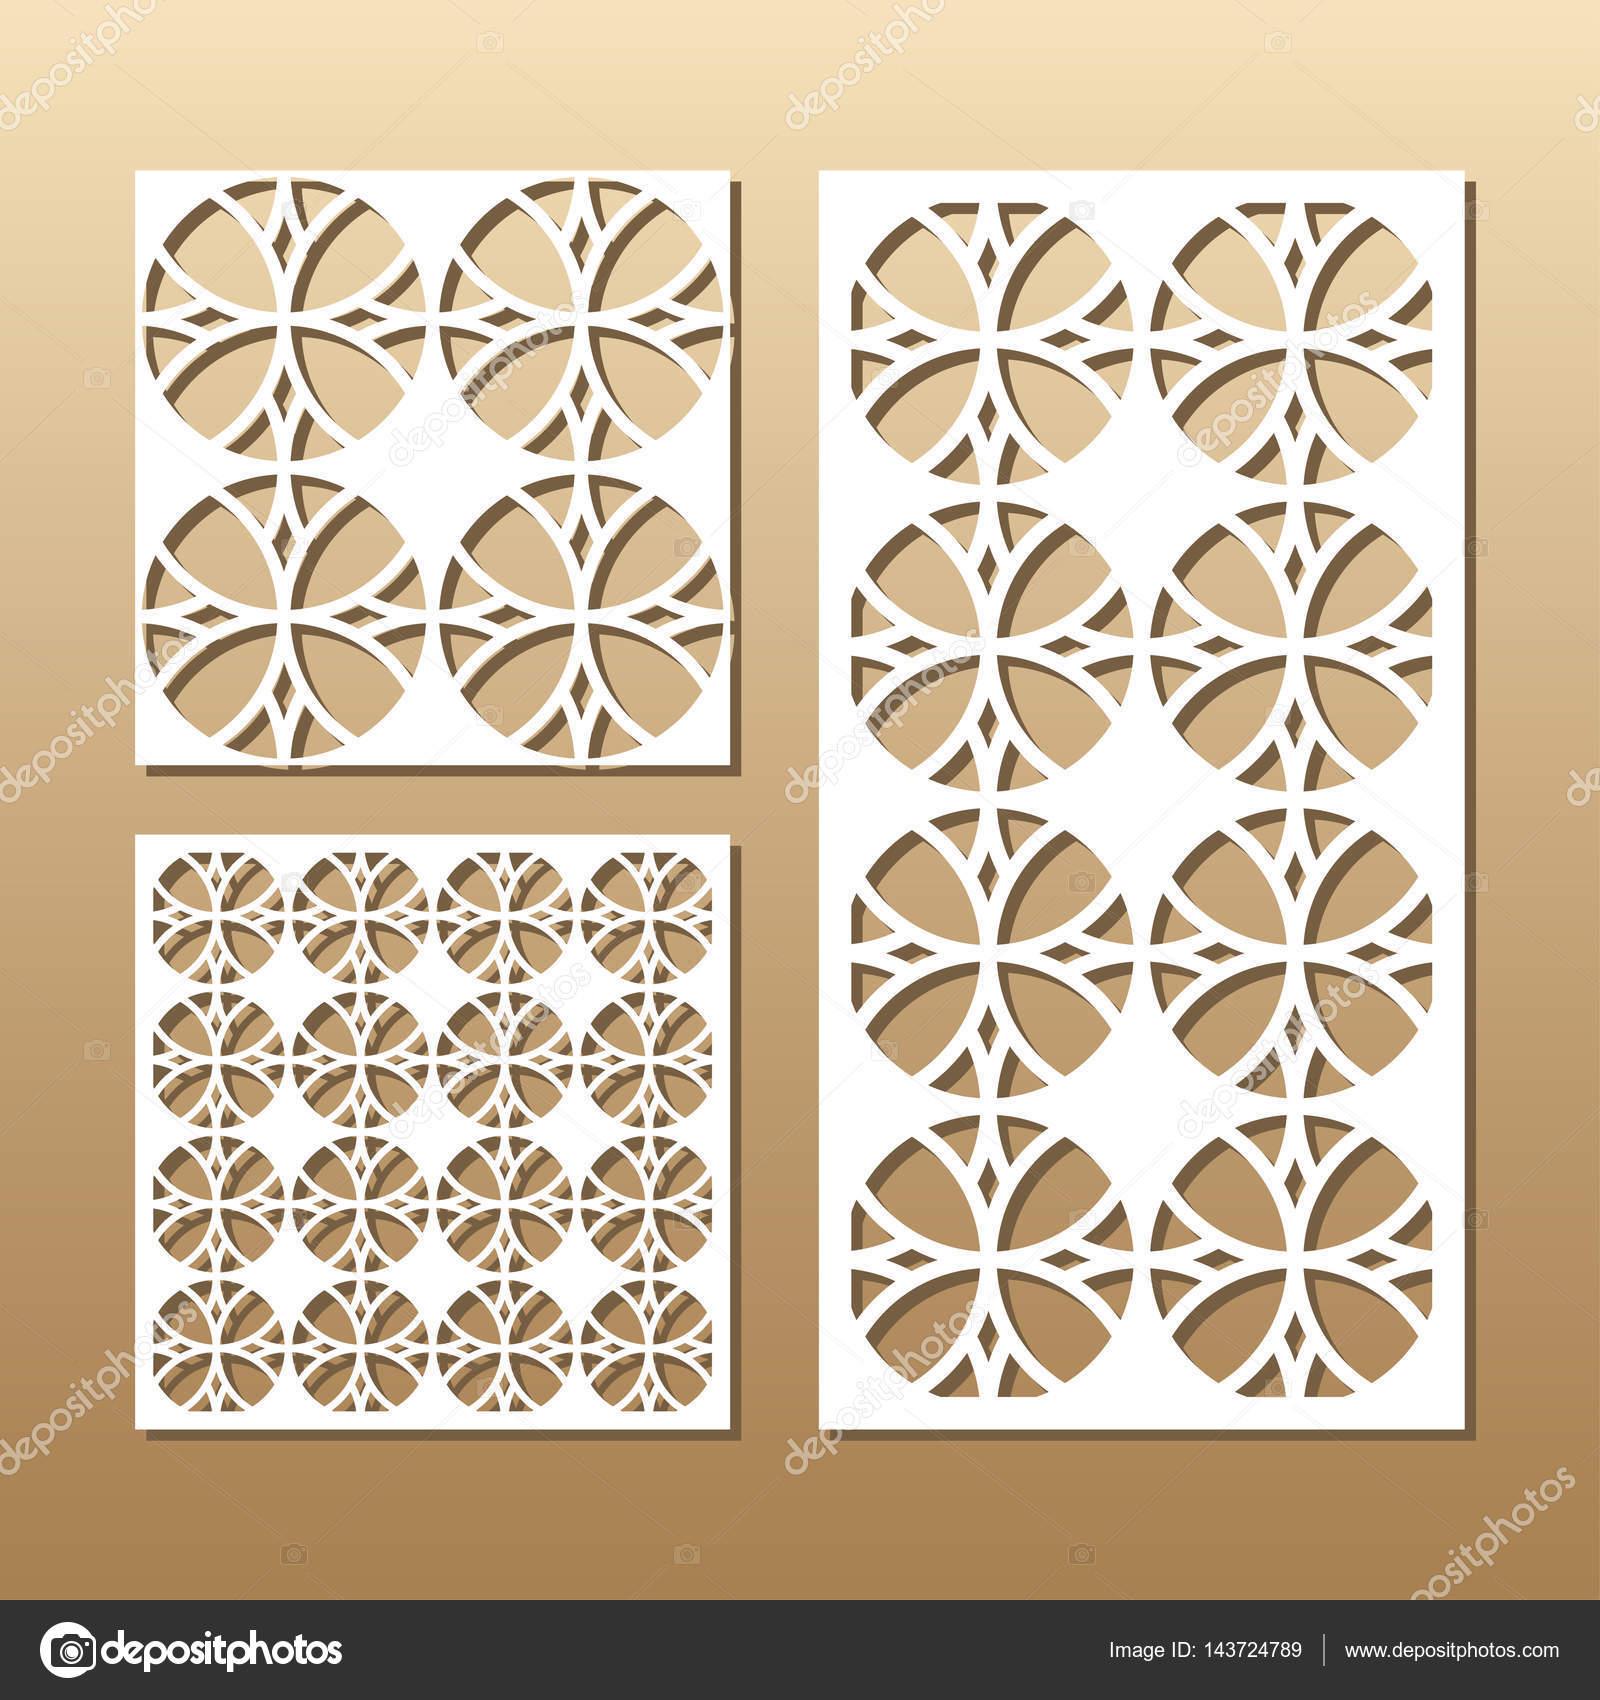 Die Cut Card Laser Vector Panel Cutout Silhouette With Geometric Pattern A Picture Suitable For Printing Engraving Cutting Paper Wood